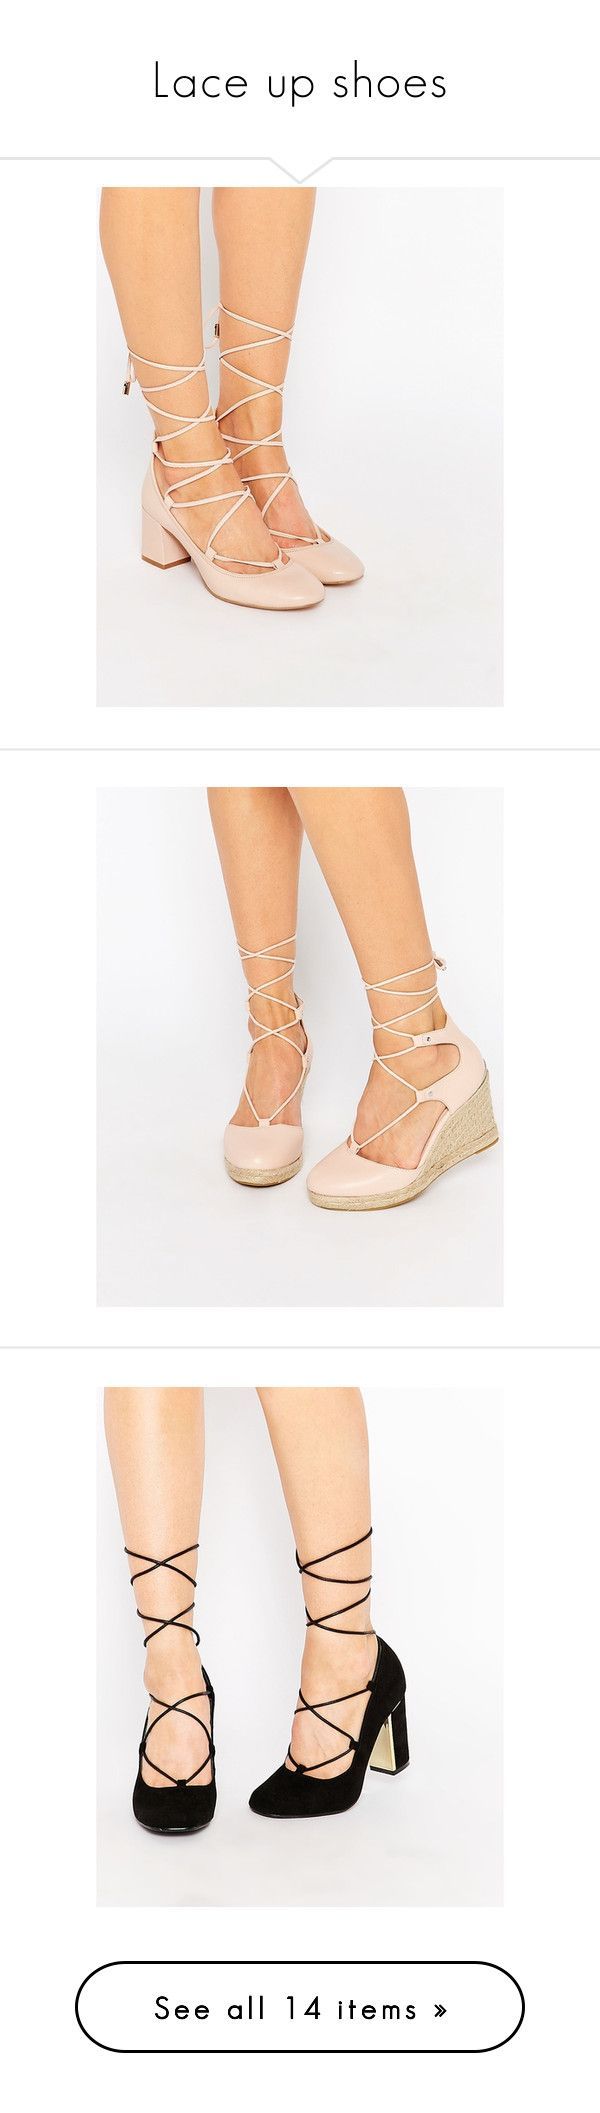 """""""Lace up shoes"""" by olga-kim-b ❤ liked on Polyvore featuring shoes, pumps, pale pink, suede shoes, lace up pumps, nude kitten heel shoes, suede lace up shoes, tie shoes, wedges shoes and round toe wedge shoes"""